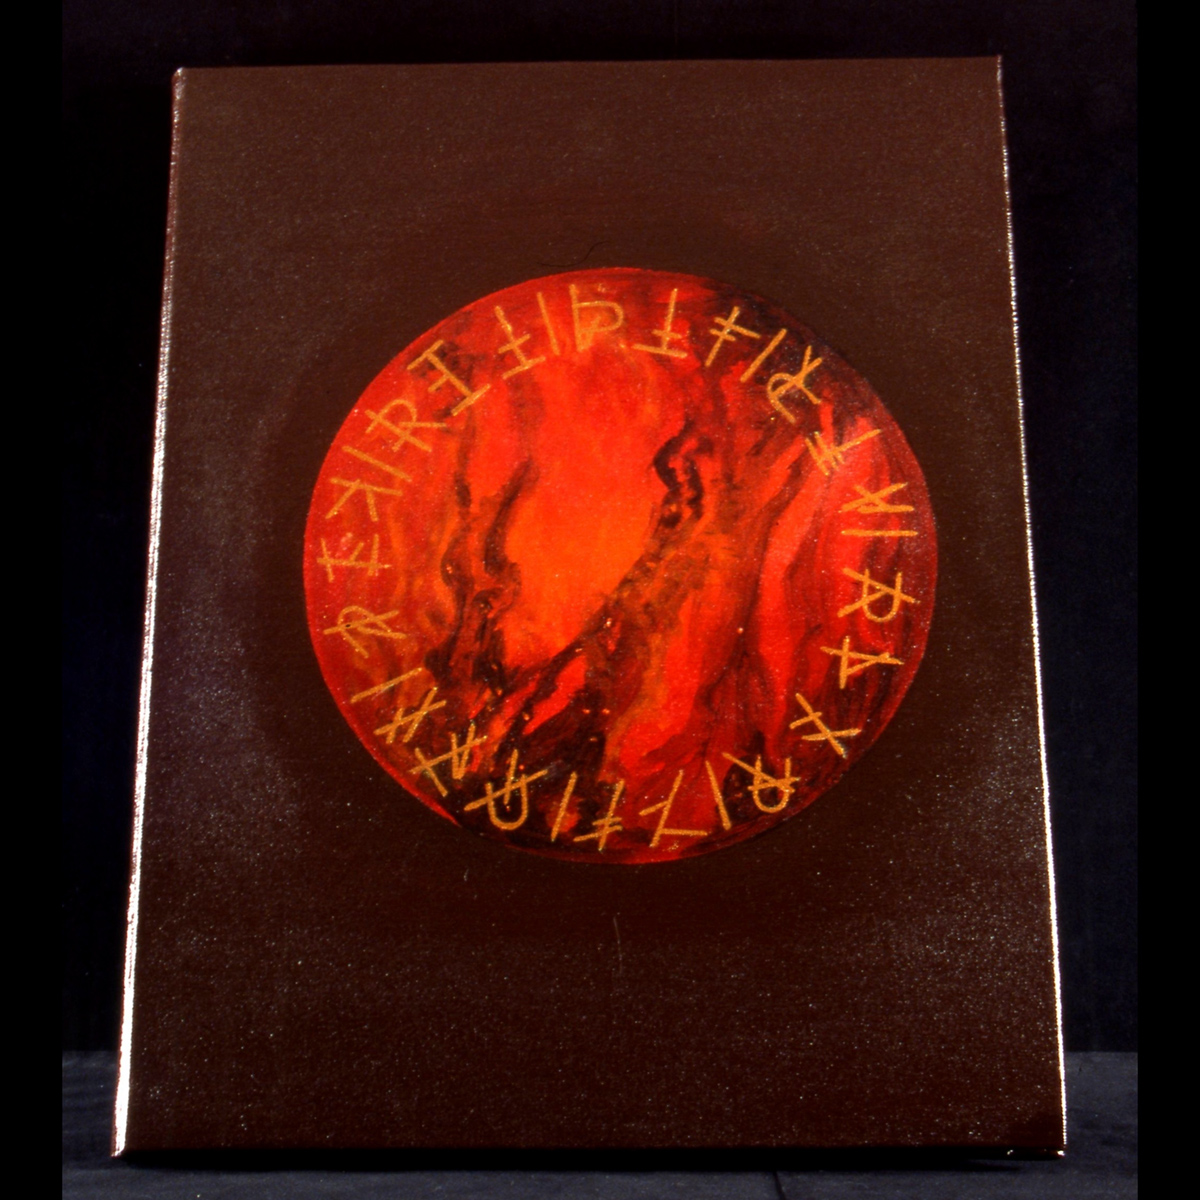 1998 © Thomas Parker Williams, Fire Book, cover